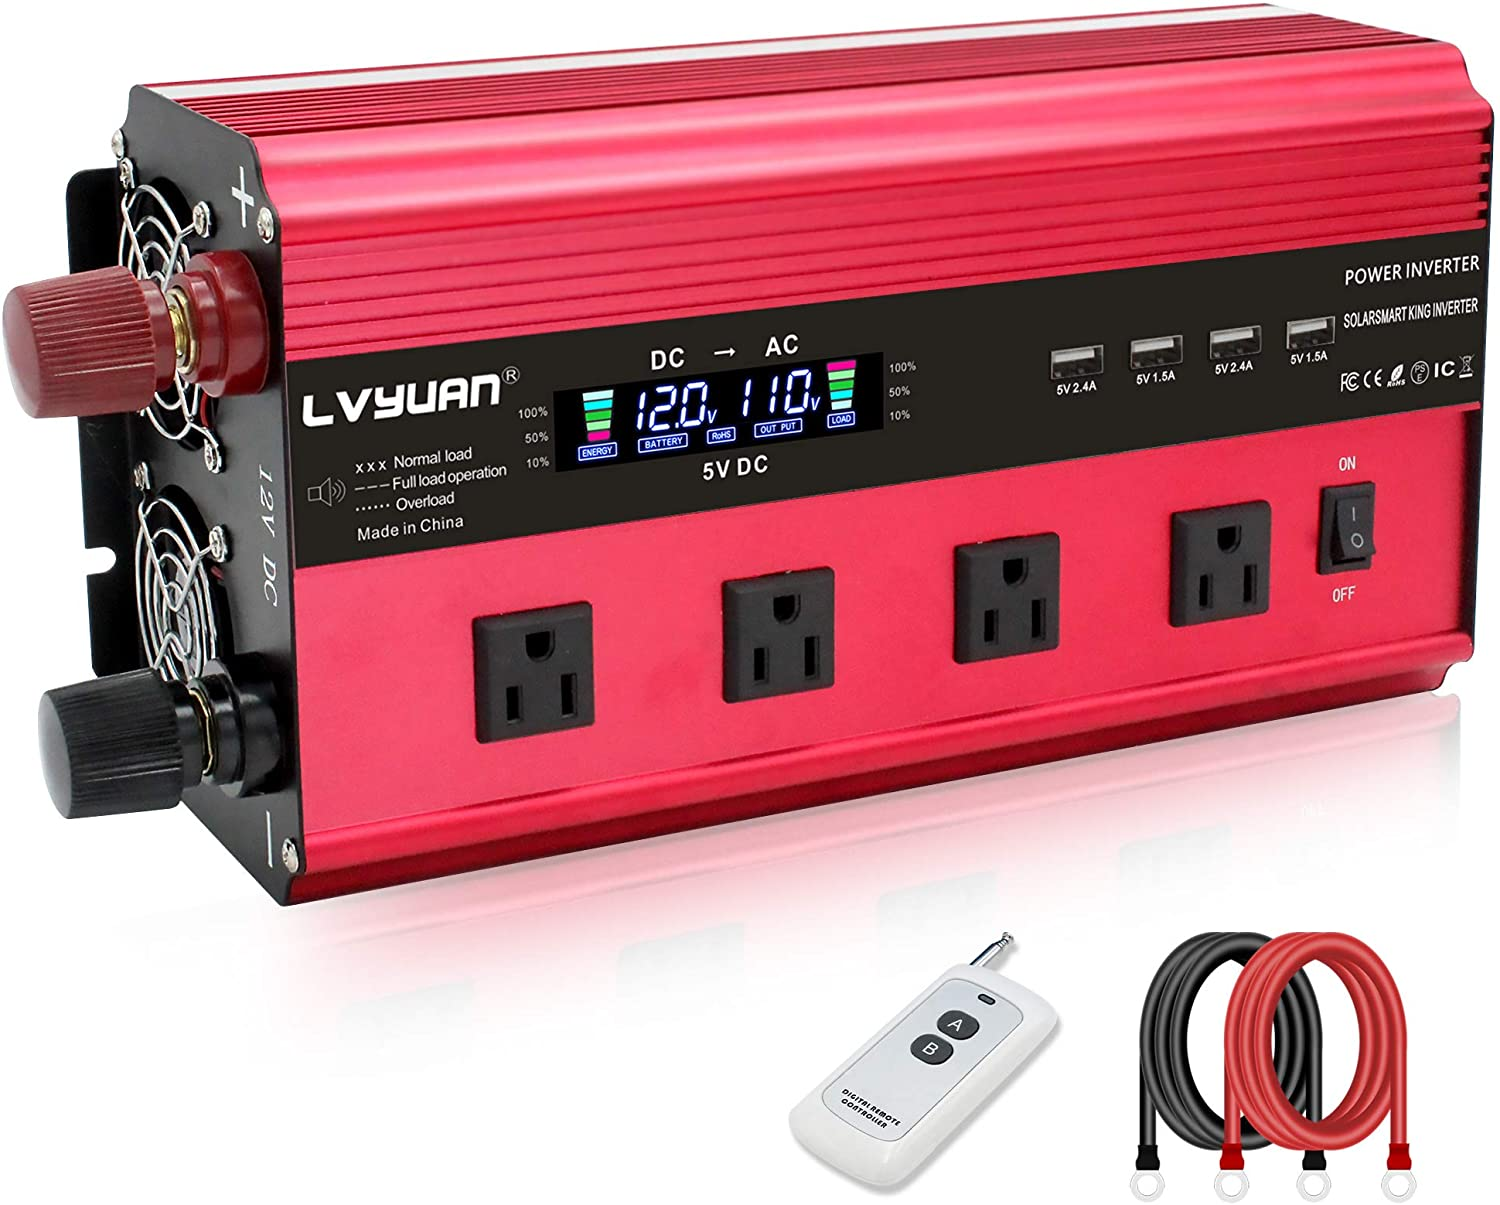 Cantonape 2500W Power Inverter 12V to 110V DC to AC with LCD Display, Remote Controller 4 x AC Outlets and 4 x 3.1A USB Car Adapter for Car Truck Boat RV Solar System